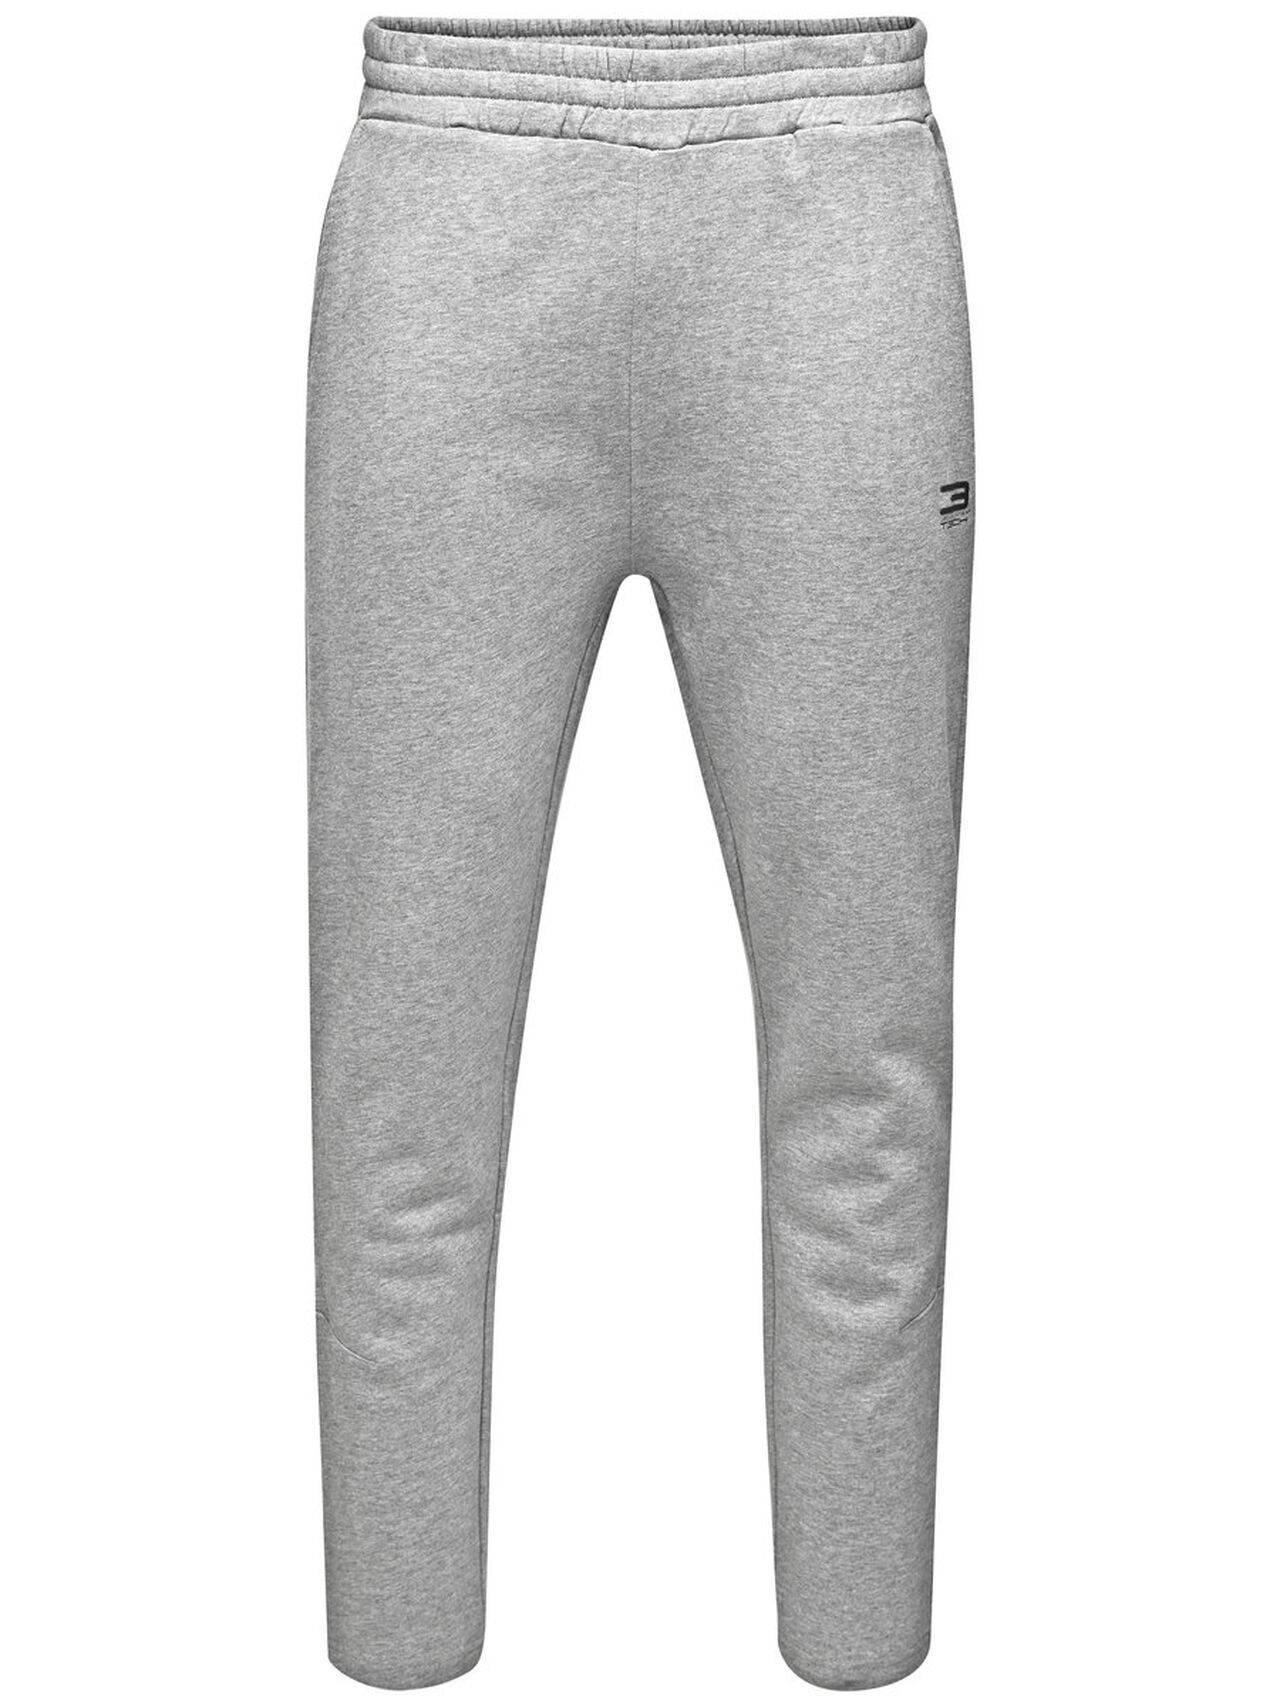 JACK & JONES Sports Sweat Pants Men Grey LightGreyMelange